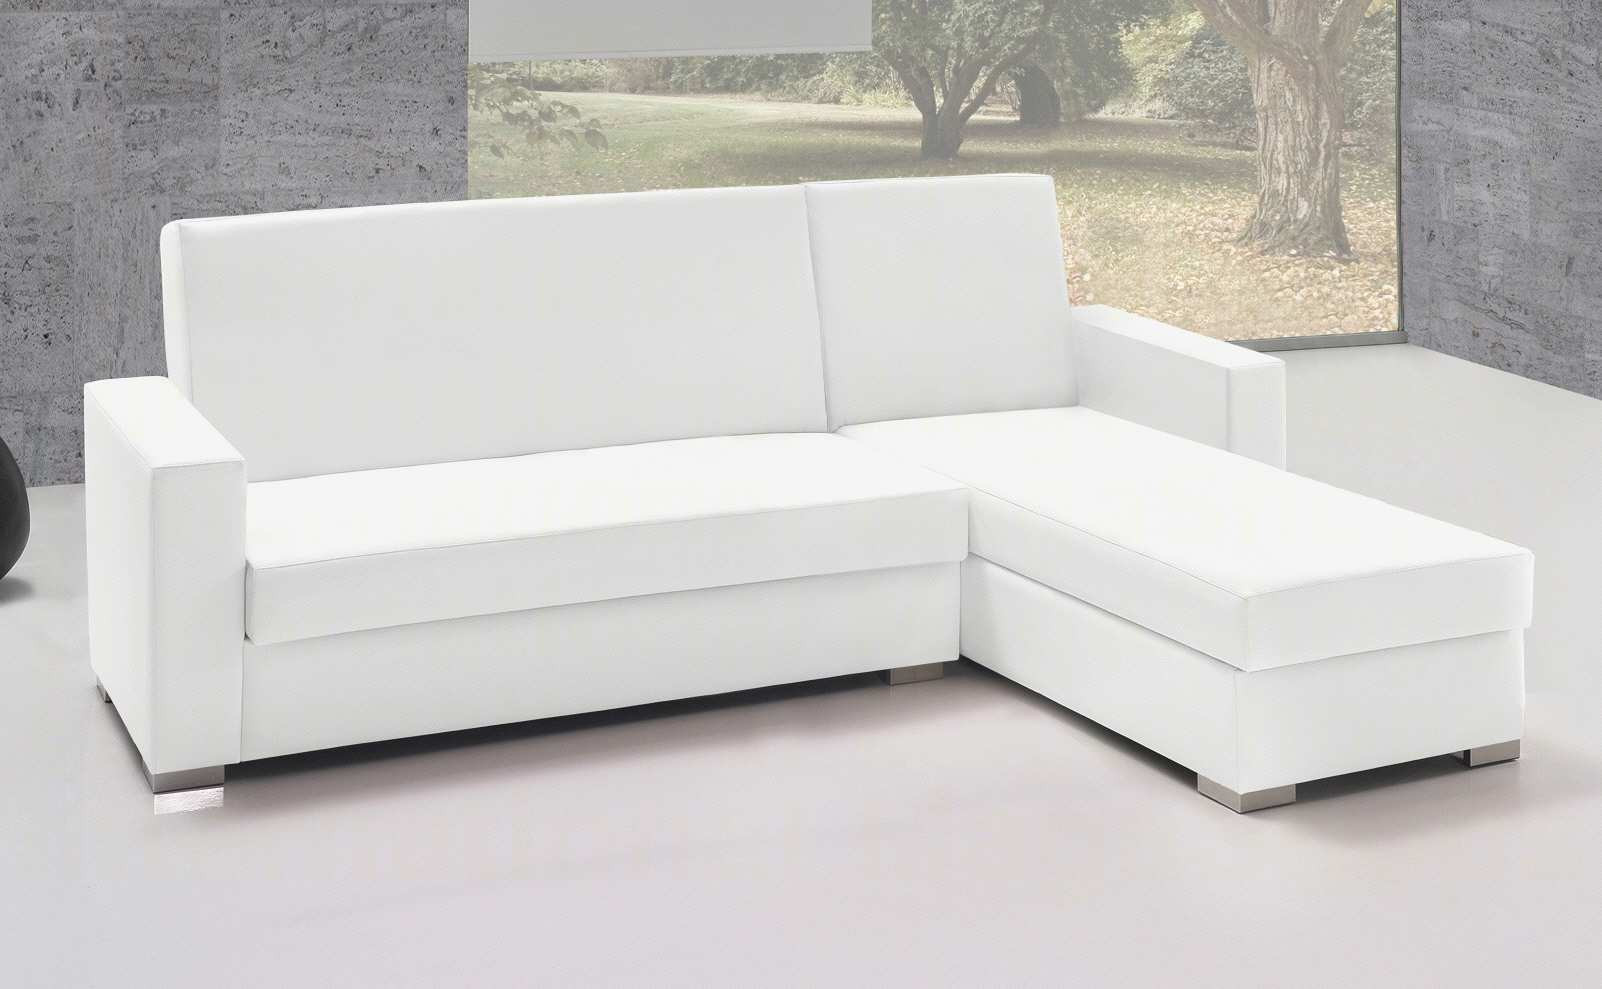 Chaise Longue Cama Baratos Magnífica sofa Cama Chaise Longue Barato Madrid Of Chaise Longue Cama Baratos Magnífico sofás Chaise Longue Baratos Online